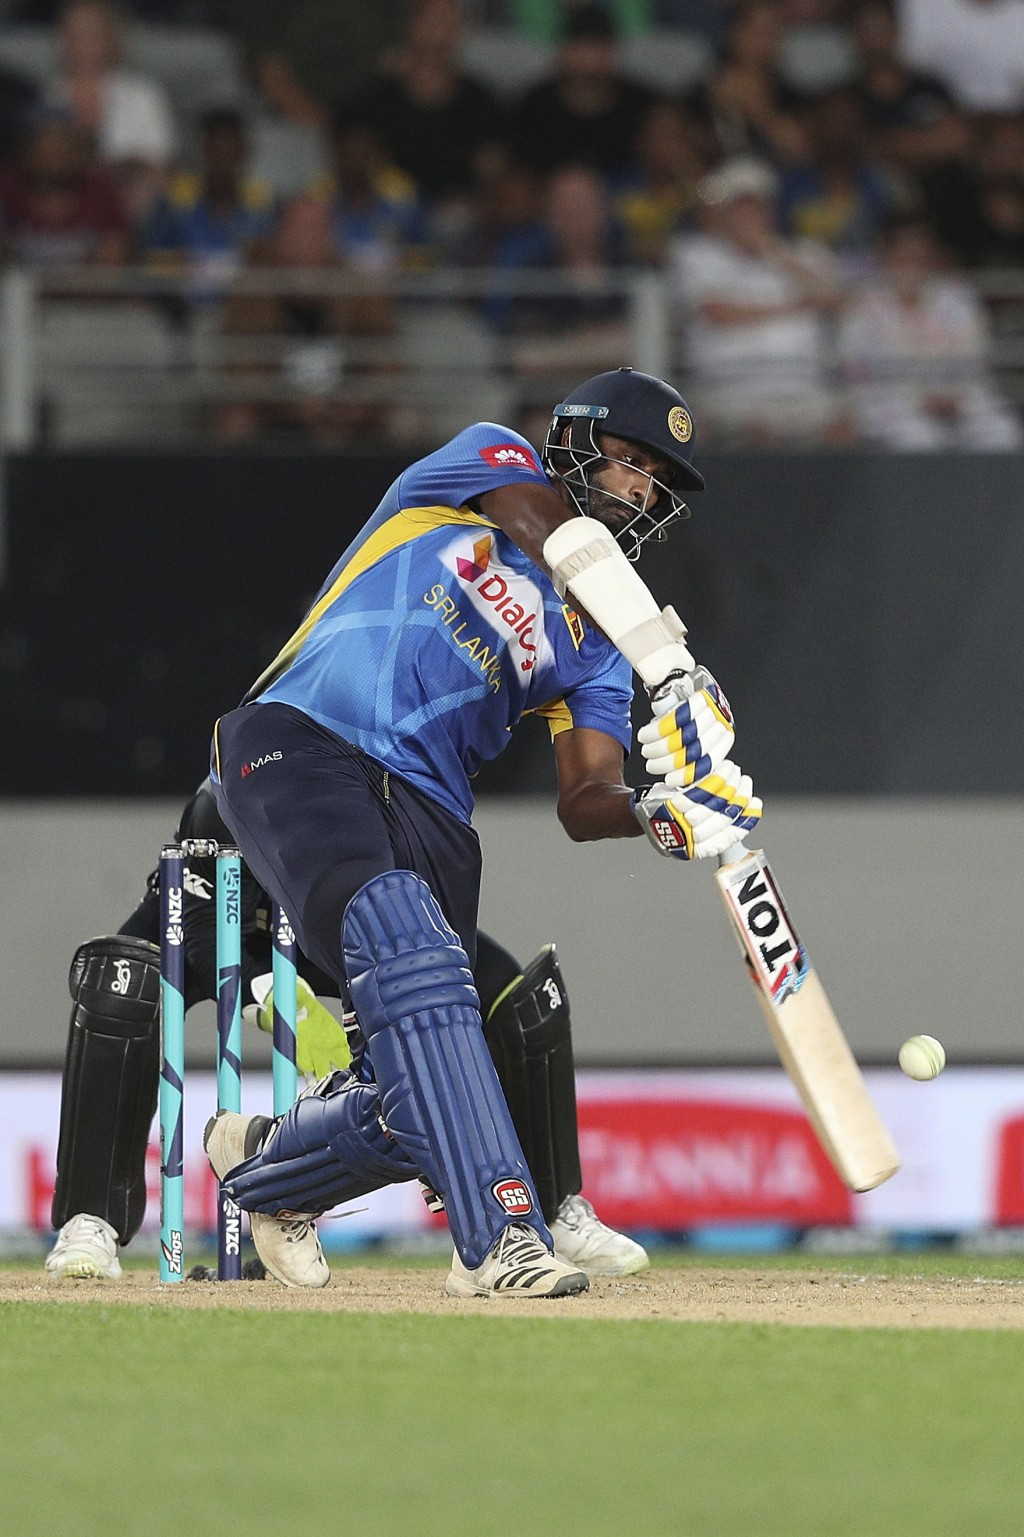 Sri Lanka's Thisara Perera bats watched by New Zealand's Wicketkeeper Tim Seifert during their twenty/20 cricket international at Eden Park in Aucklan